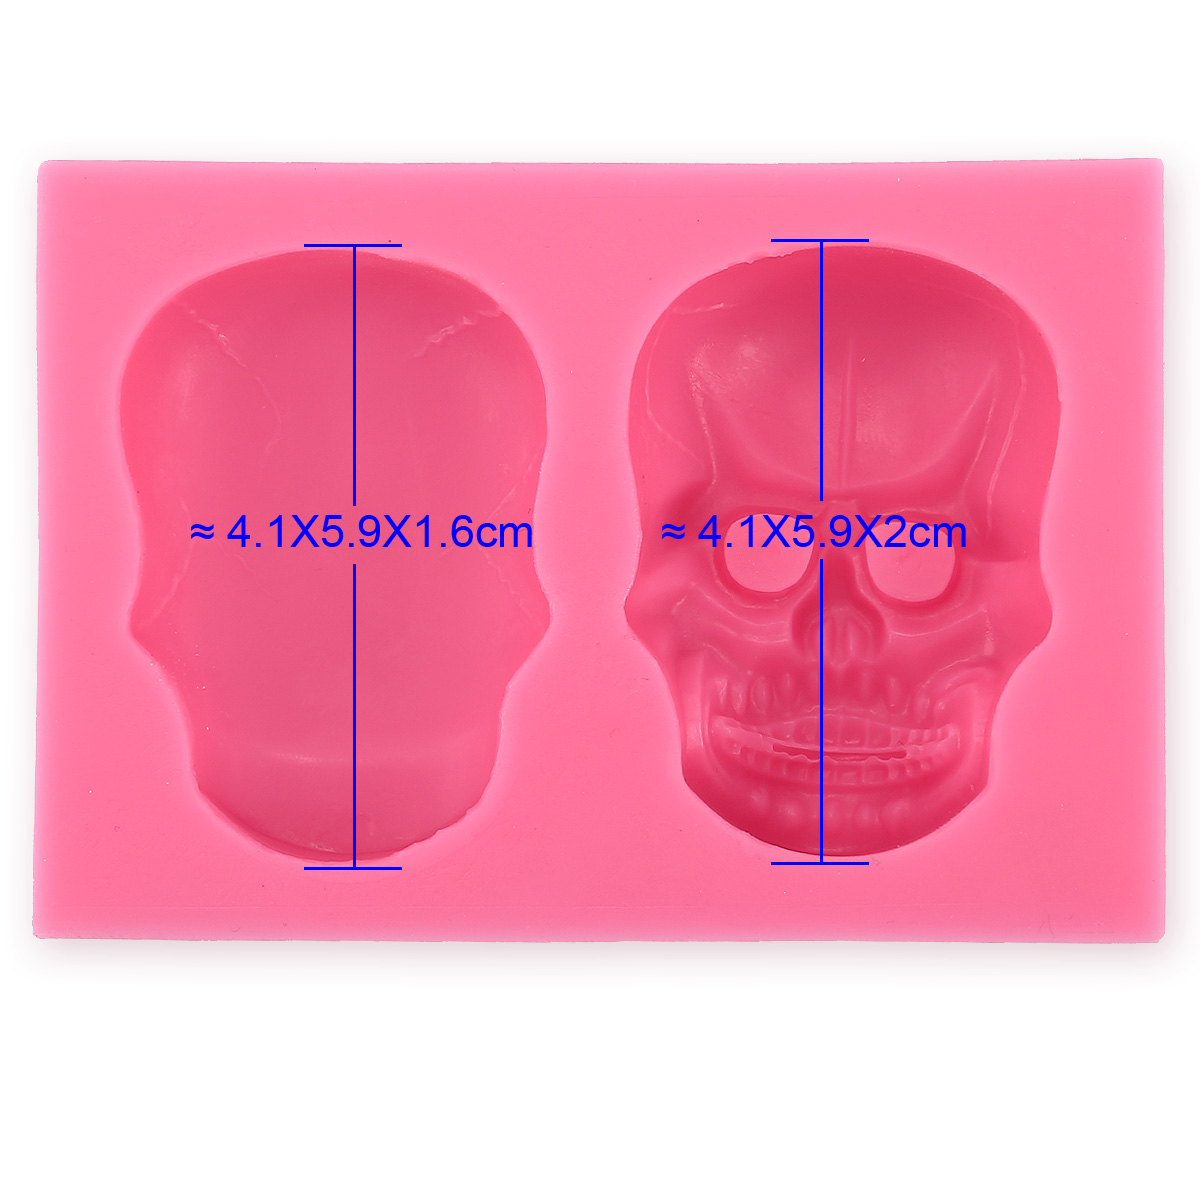 Cake Decorating Silicone Molds Uk : 3D Halloween Skull Silicone Fondant Mould Cake Chocolate ...